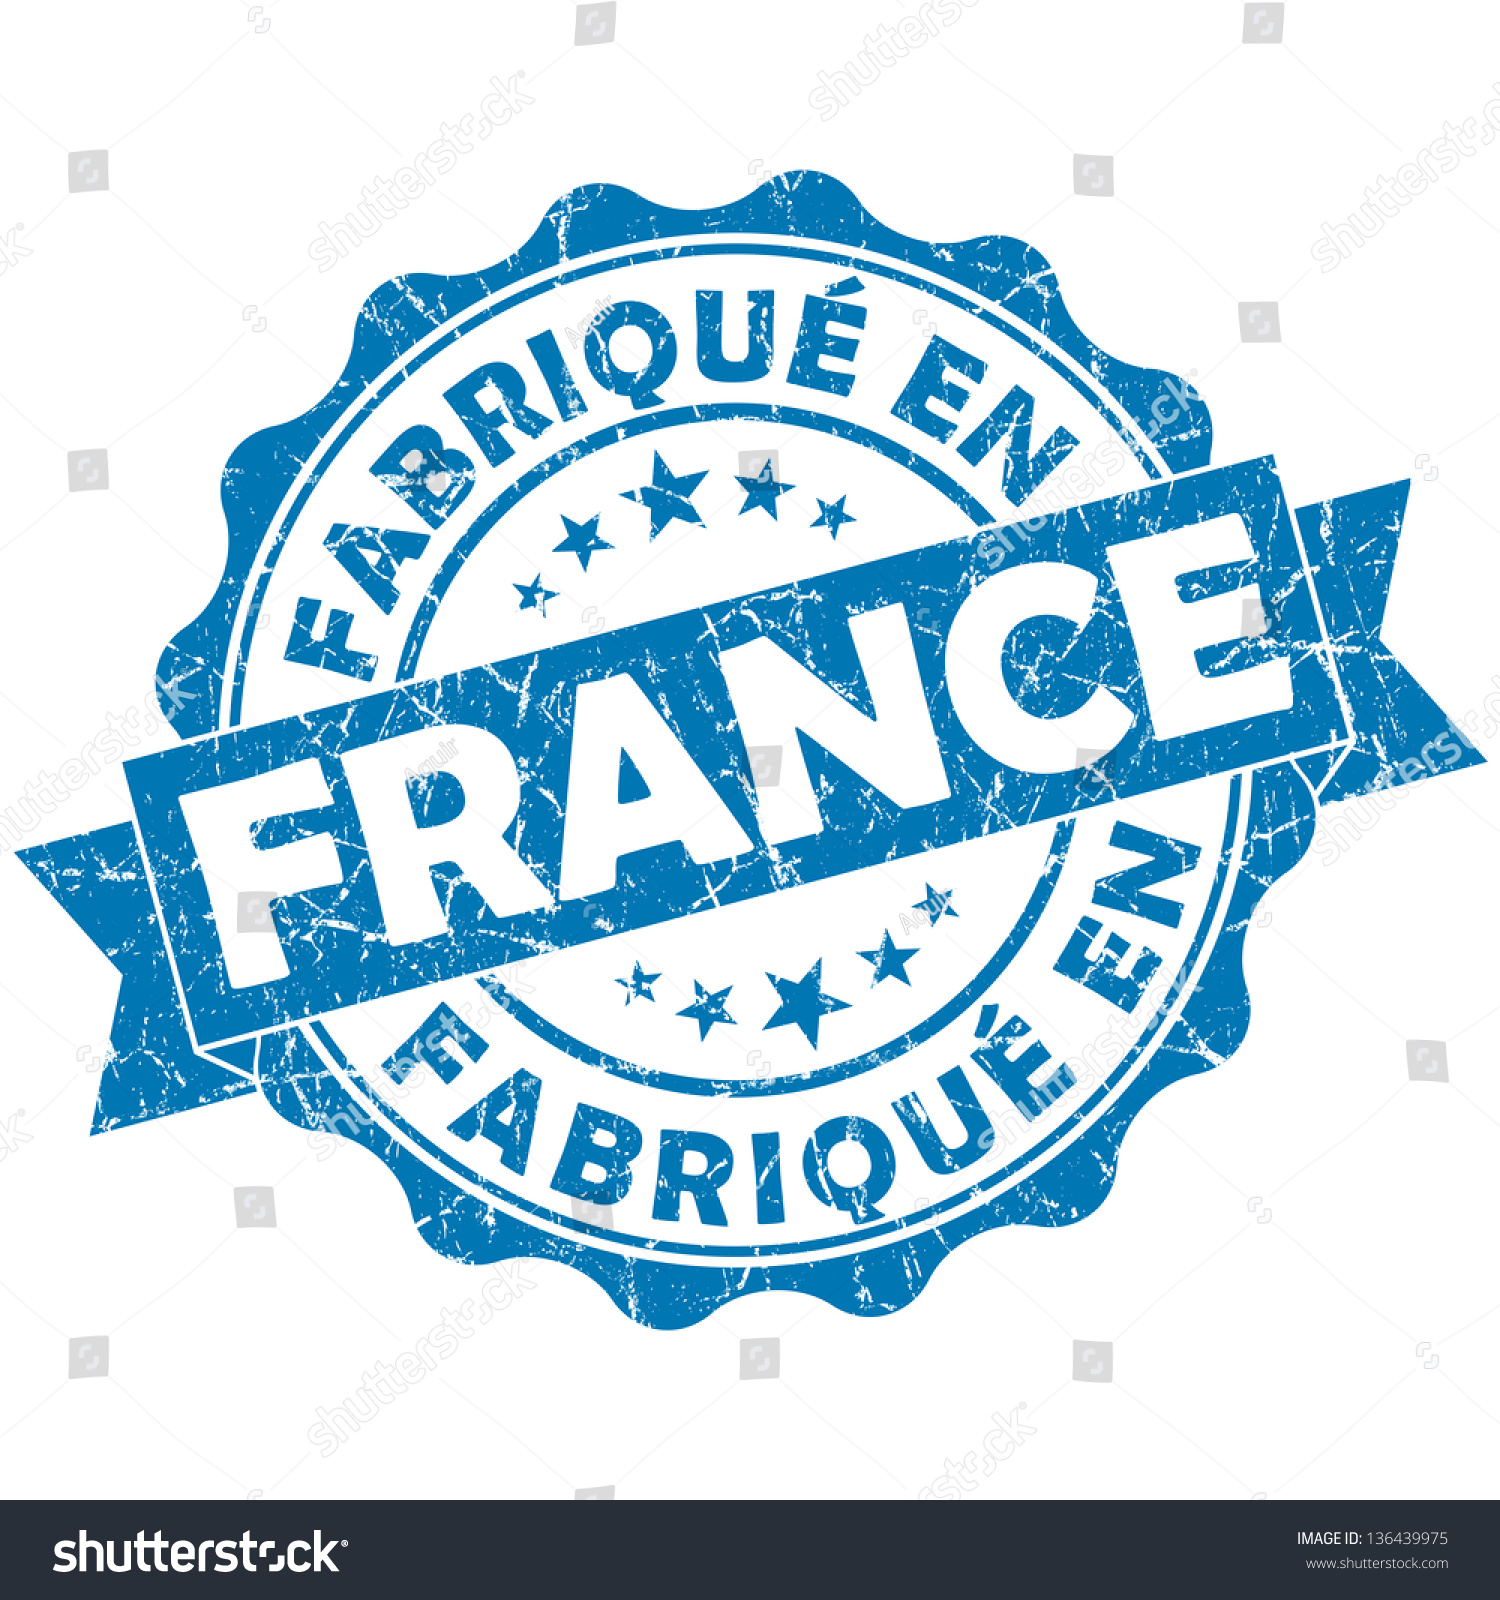 fabrique en france stamp stock illustration 136439975 shutterstock. Black Bedroom Furniture Sets. Home Design Ideas